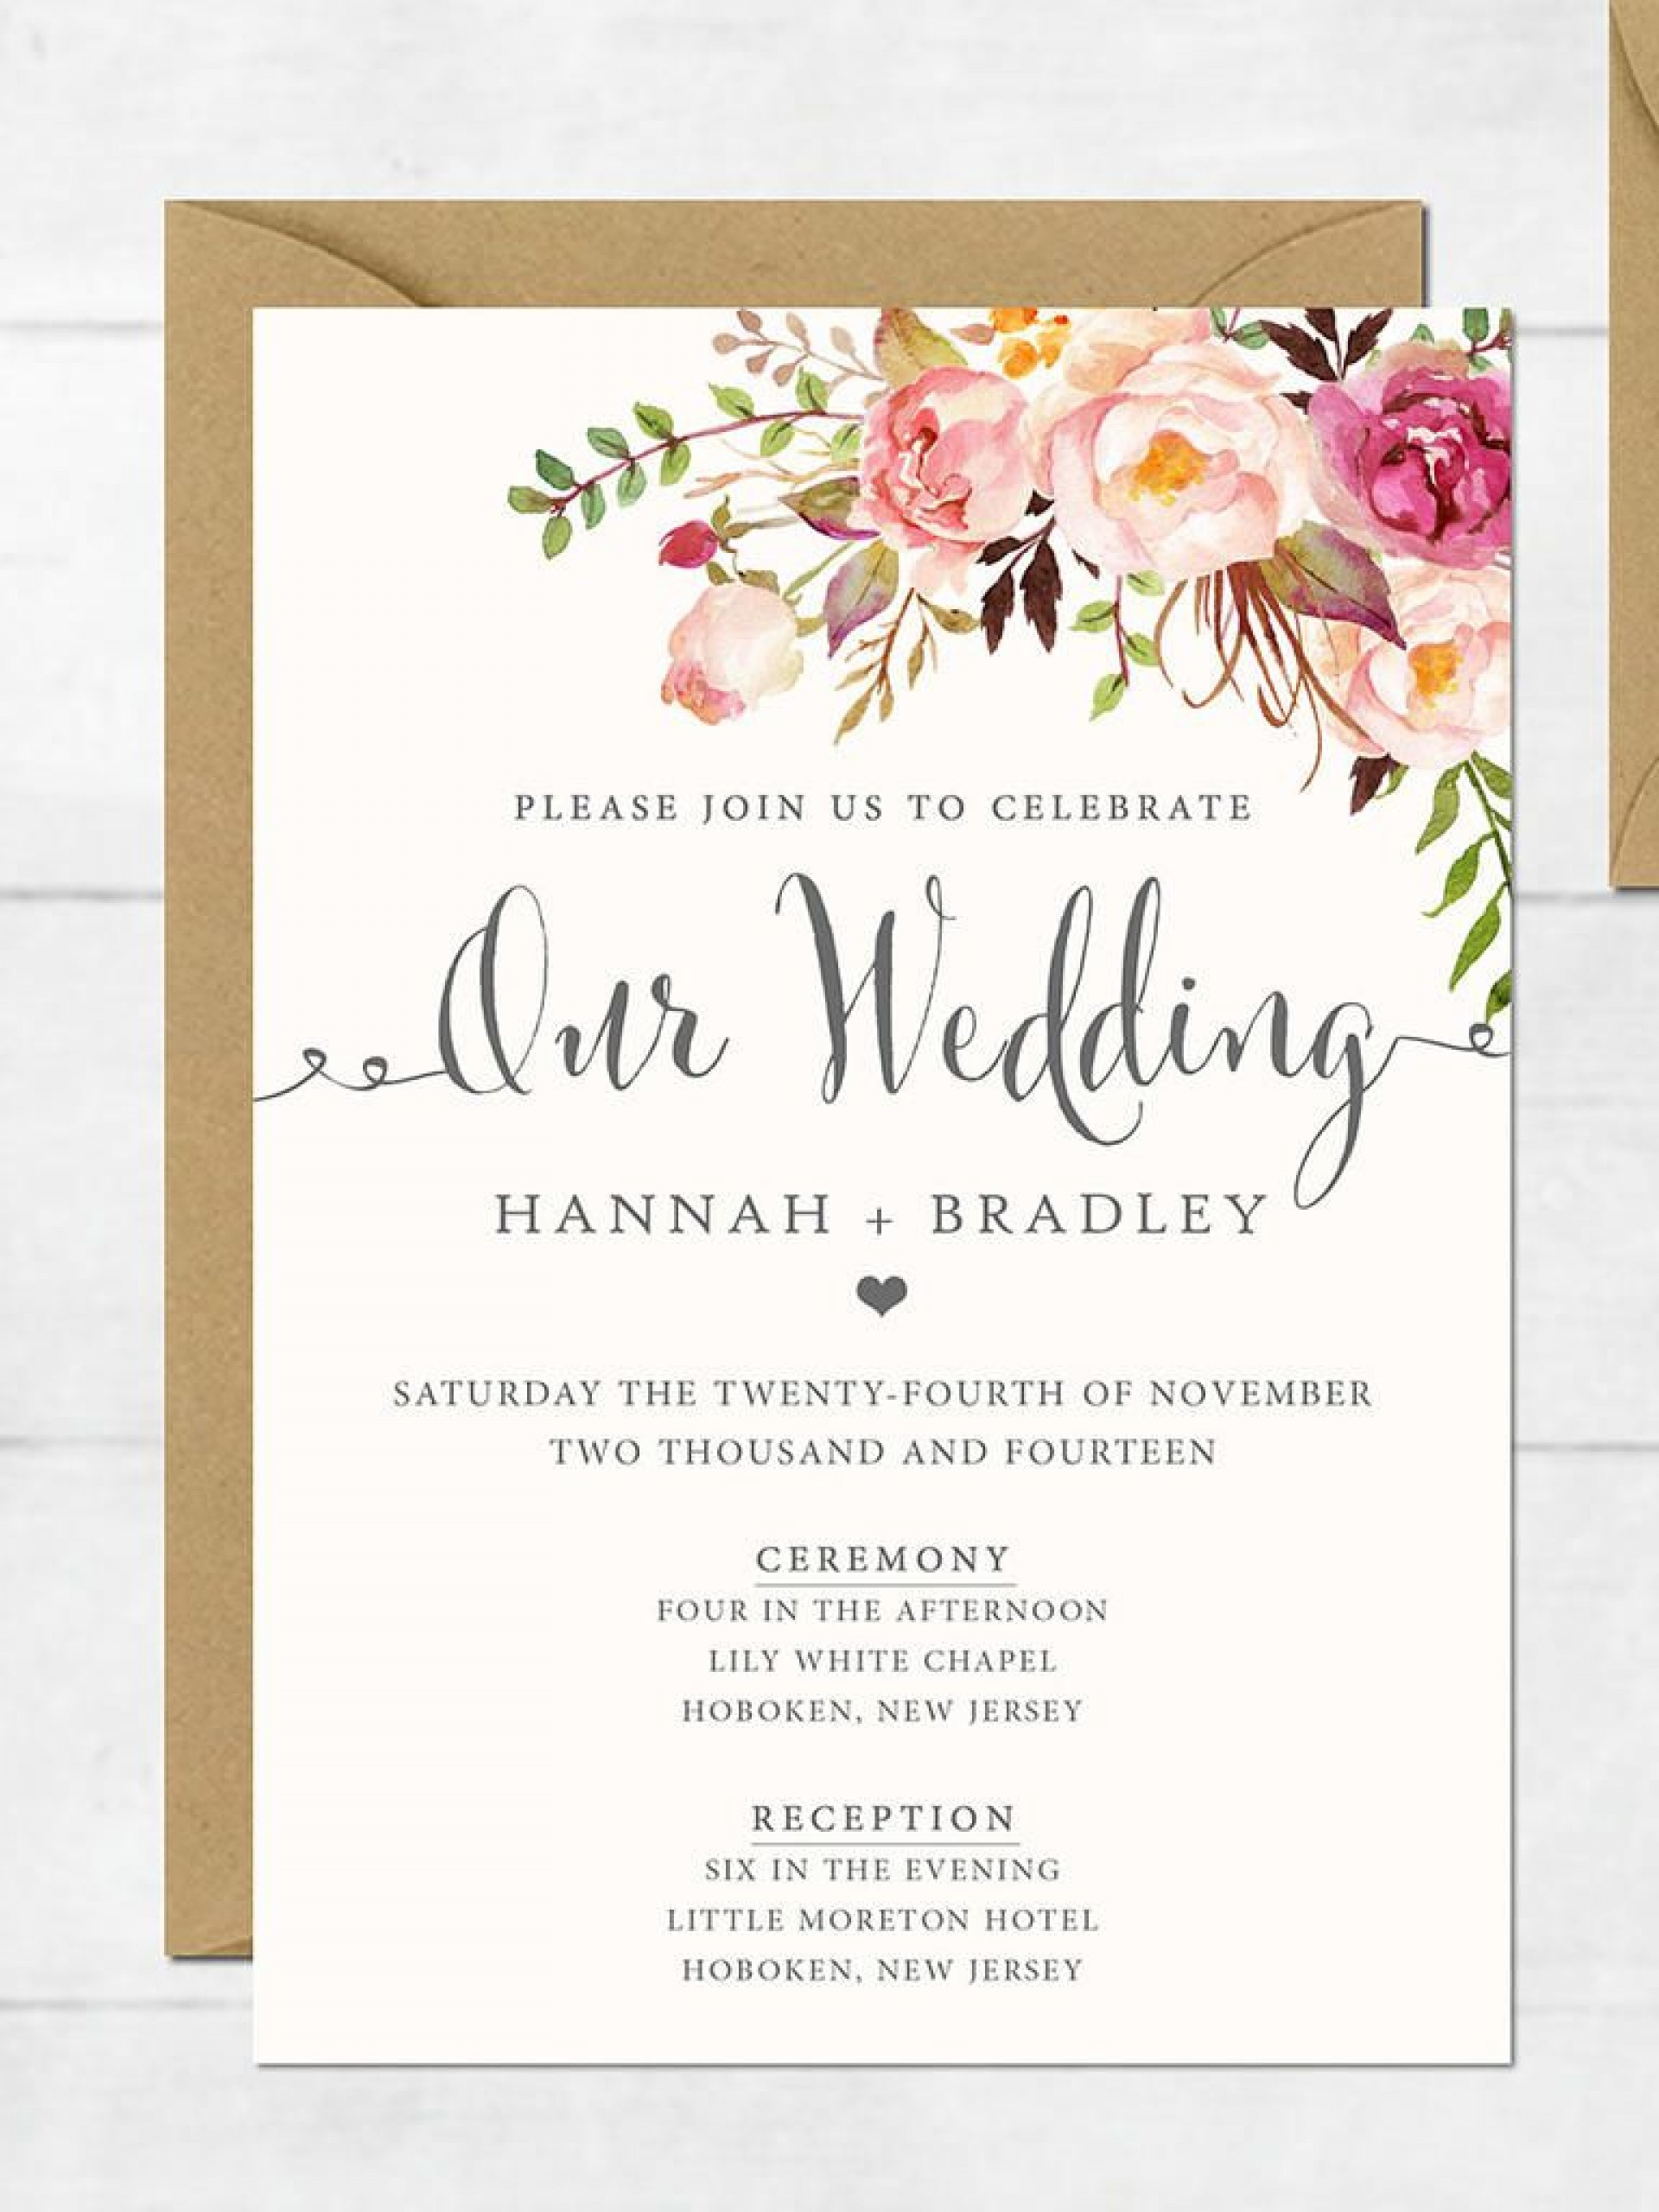 002 Unforgettable Printable Wedding Invitation Template High Definition  Free For Microsoft Word Vintage1920